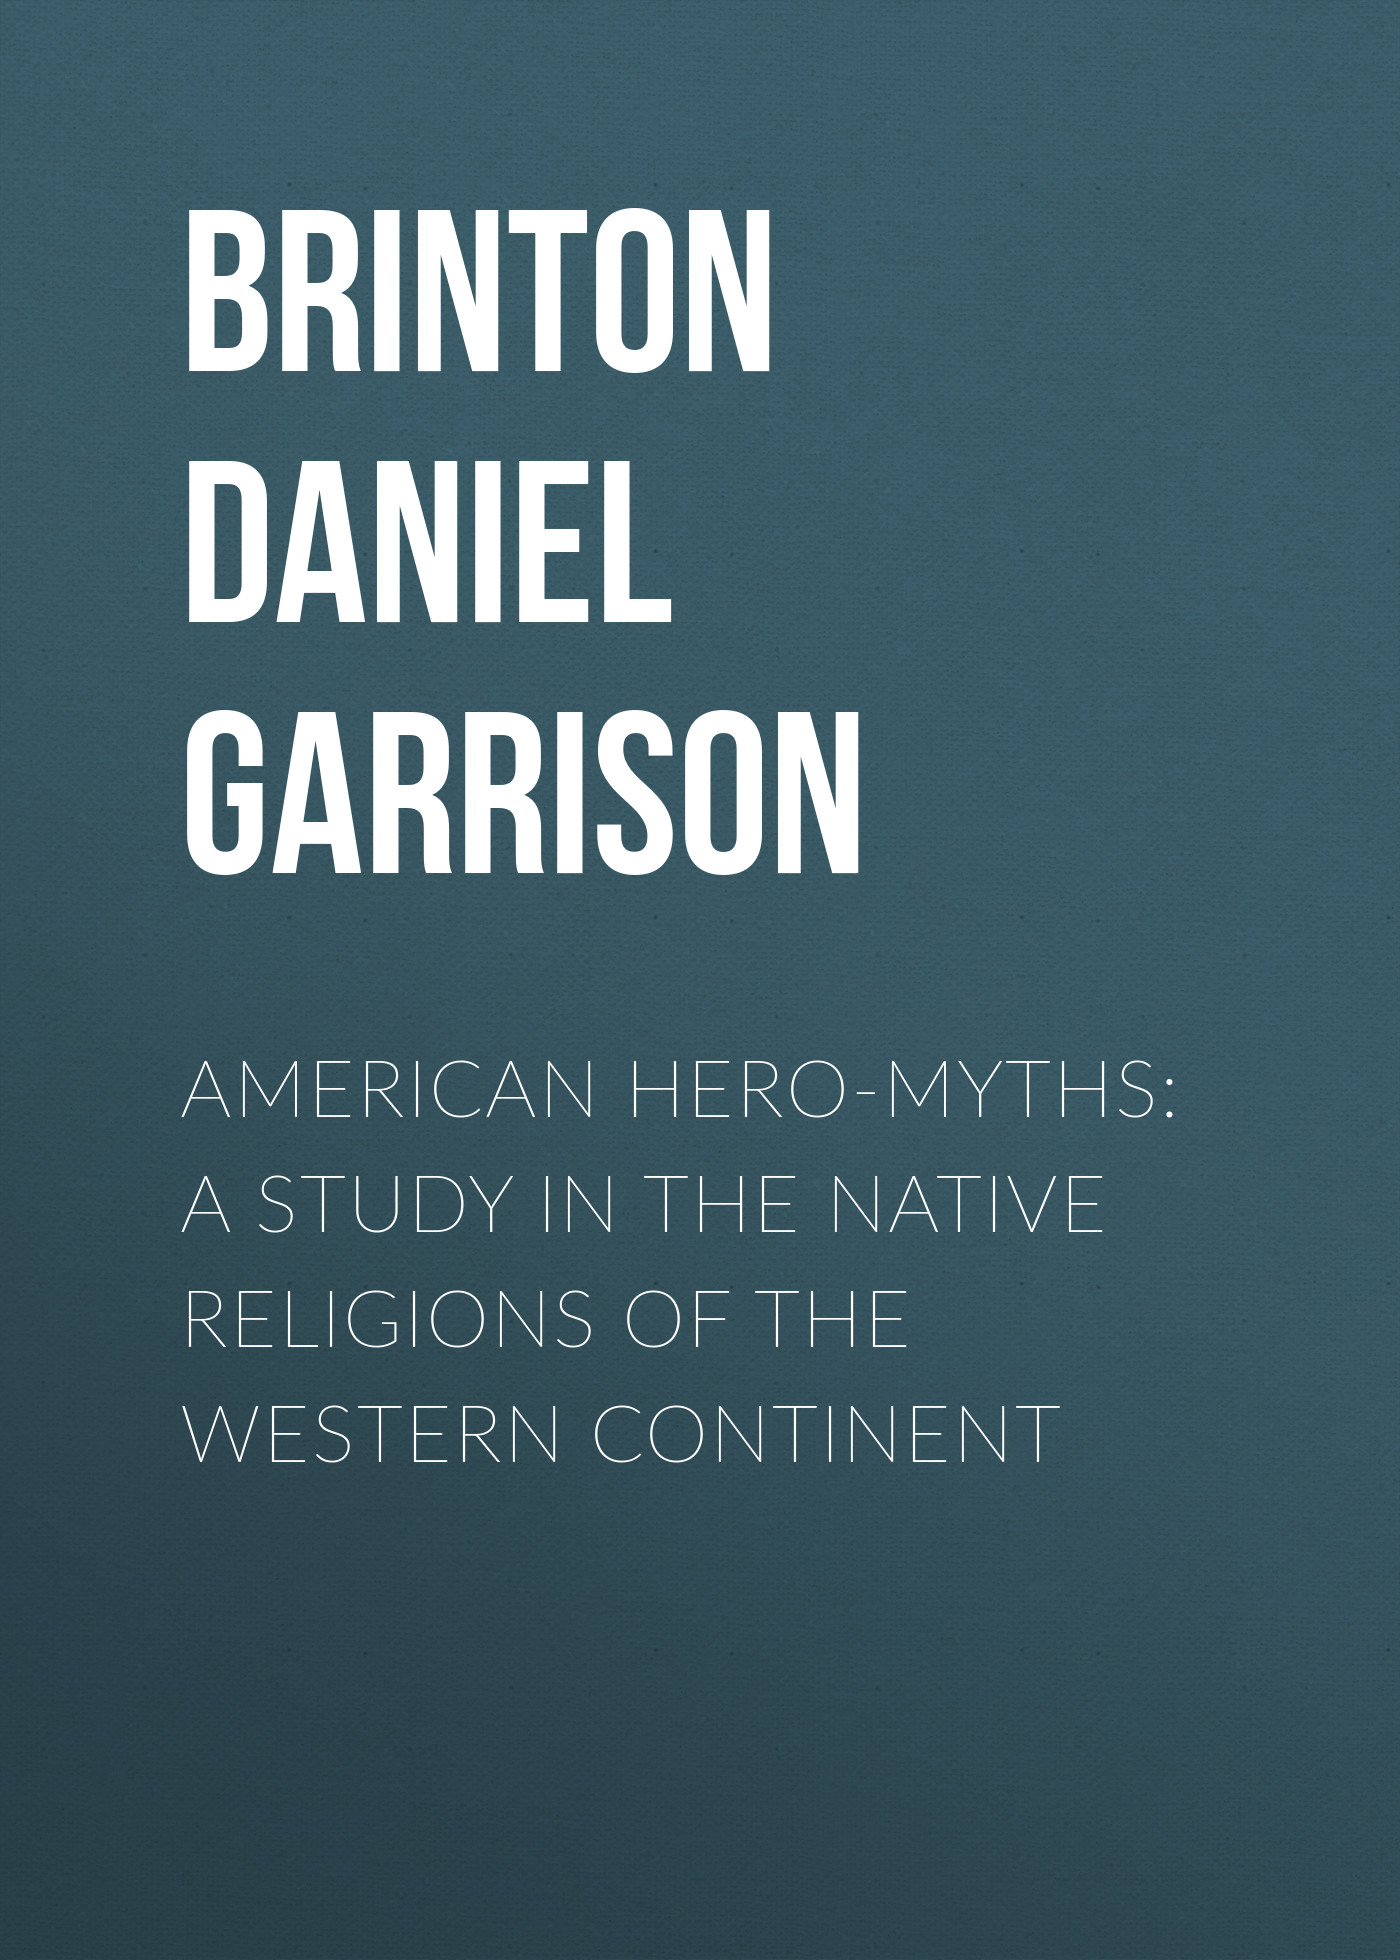 Brinton Daniel Garrison American Hero-Myths: A Study in the Native Religions of the Western Continent